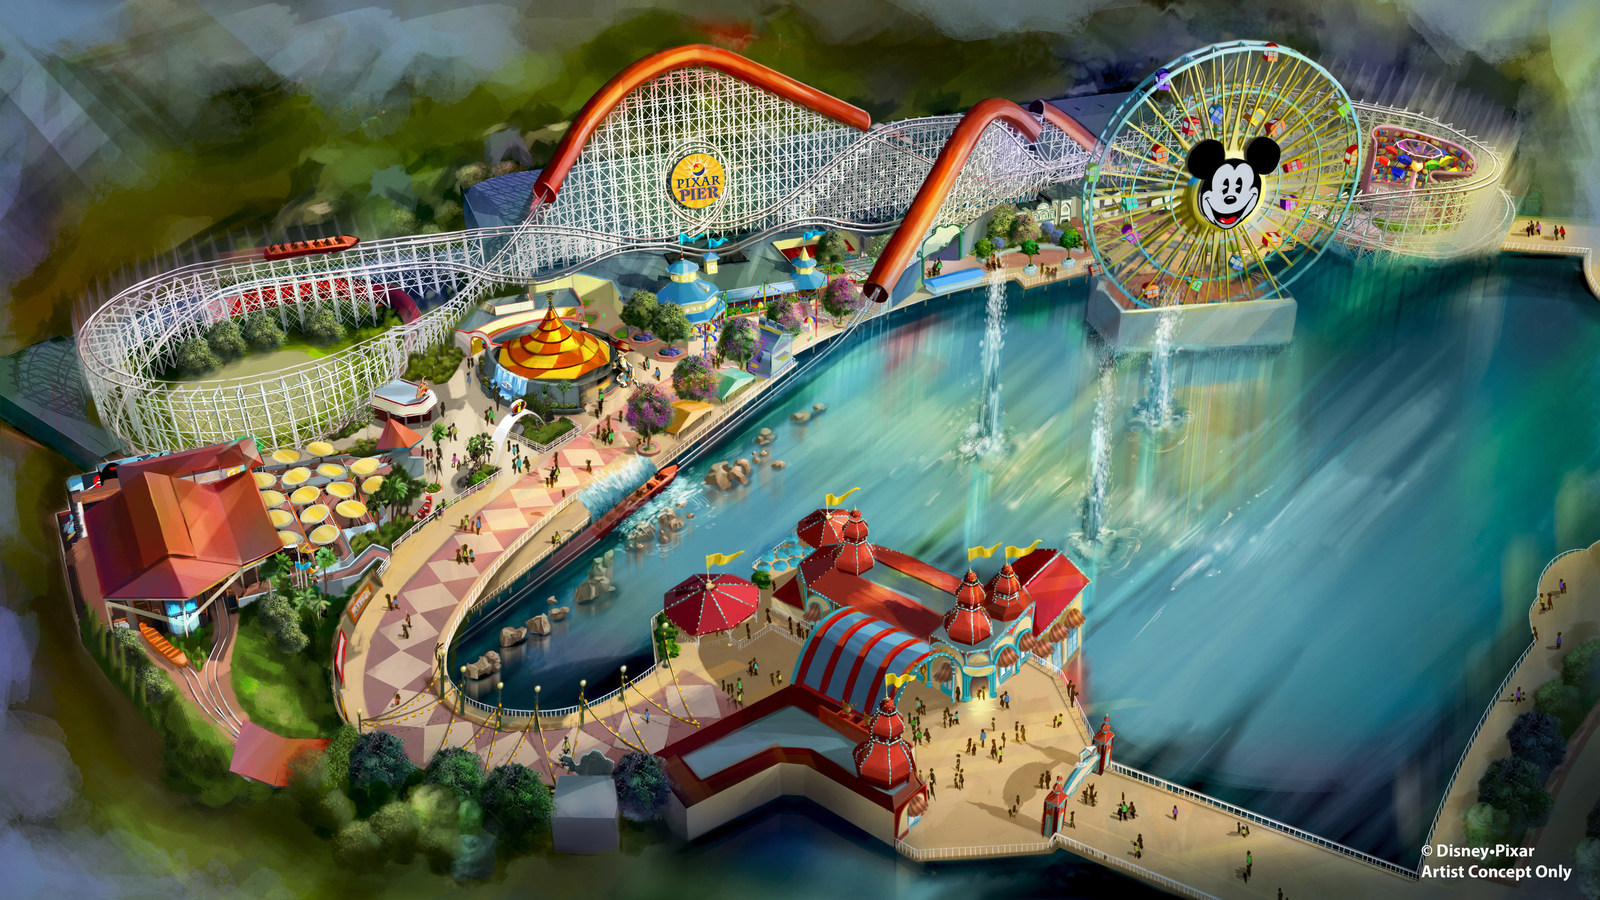 Pixar Pier Opens in Summer 2018 with New Incredicoaster, Inspired by 'The Incredibles,' at Disney California Adventure Park